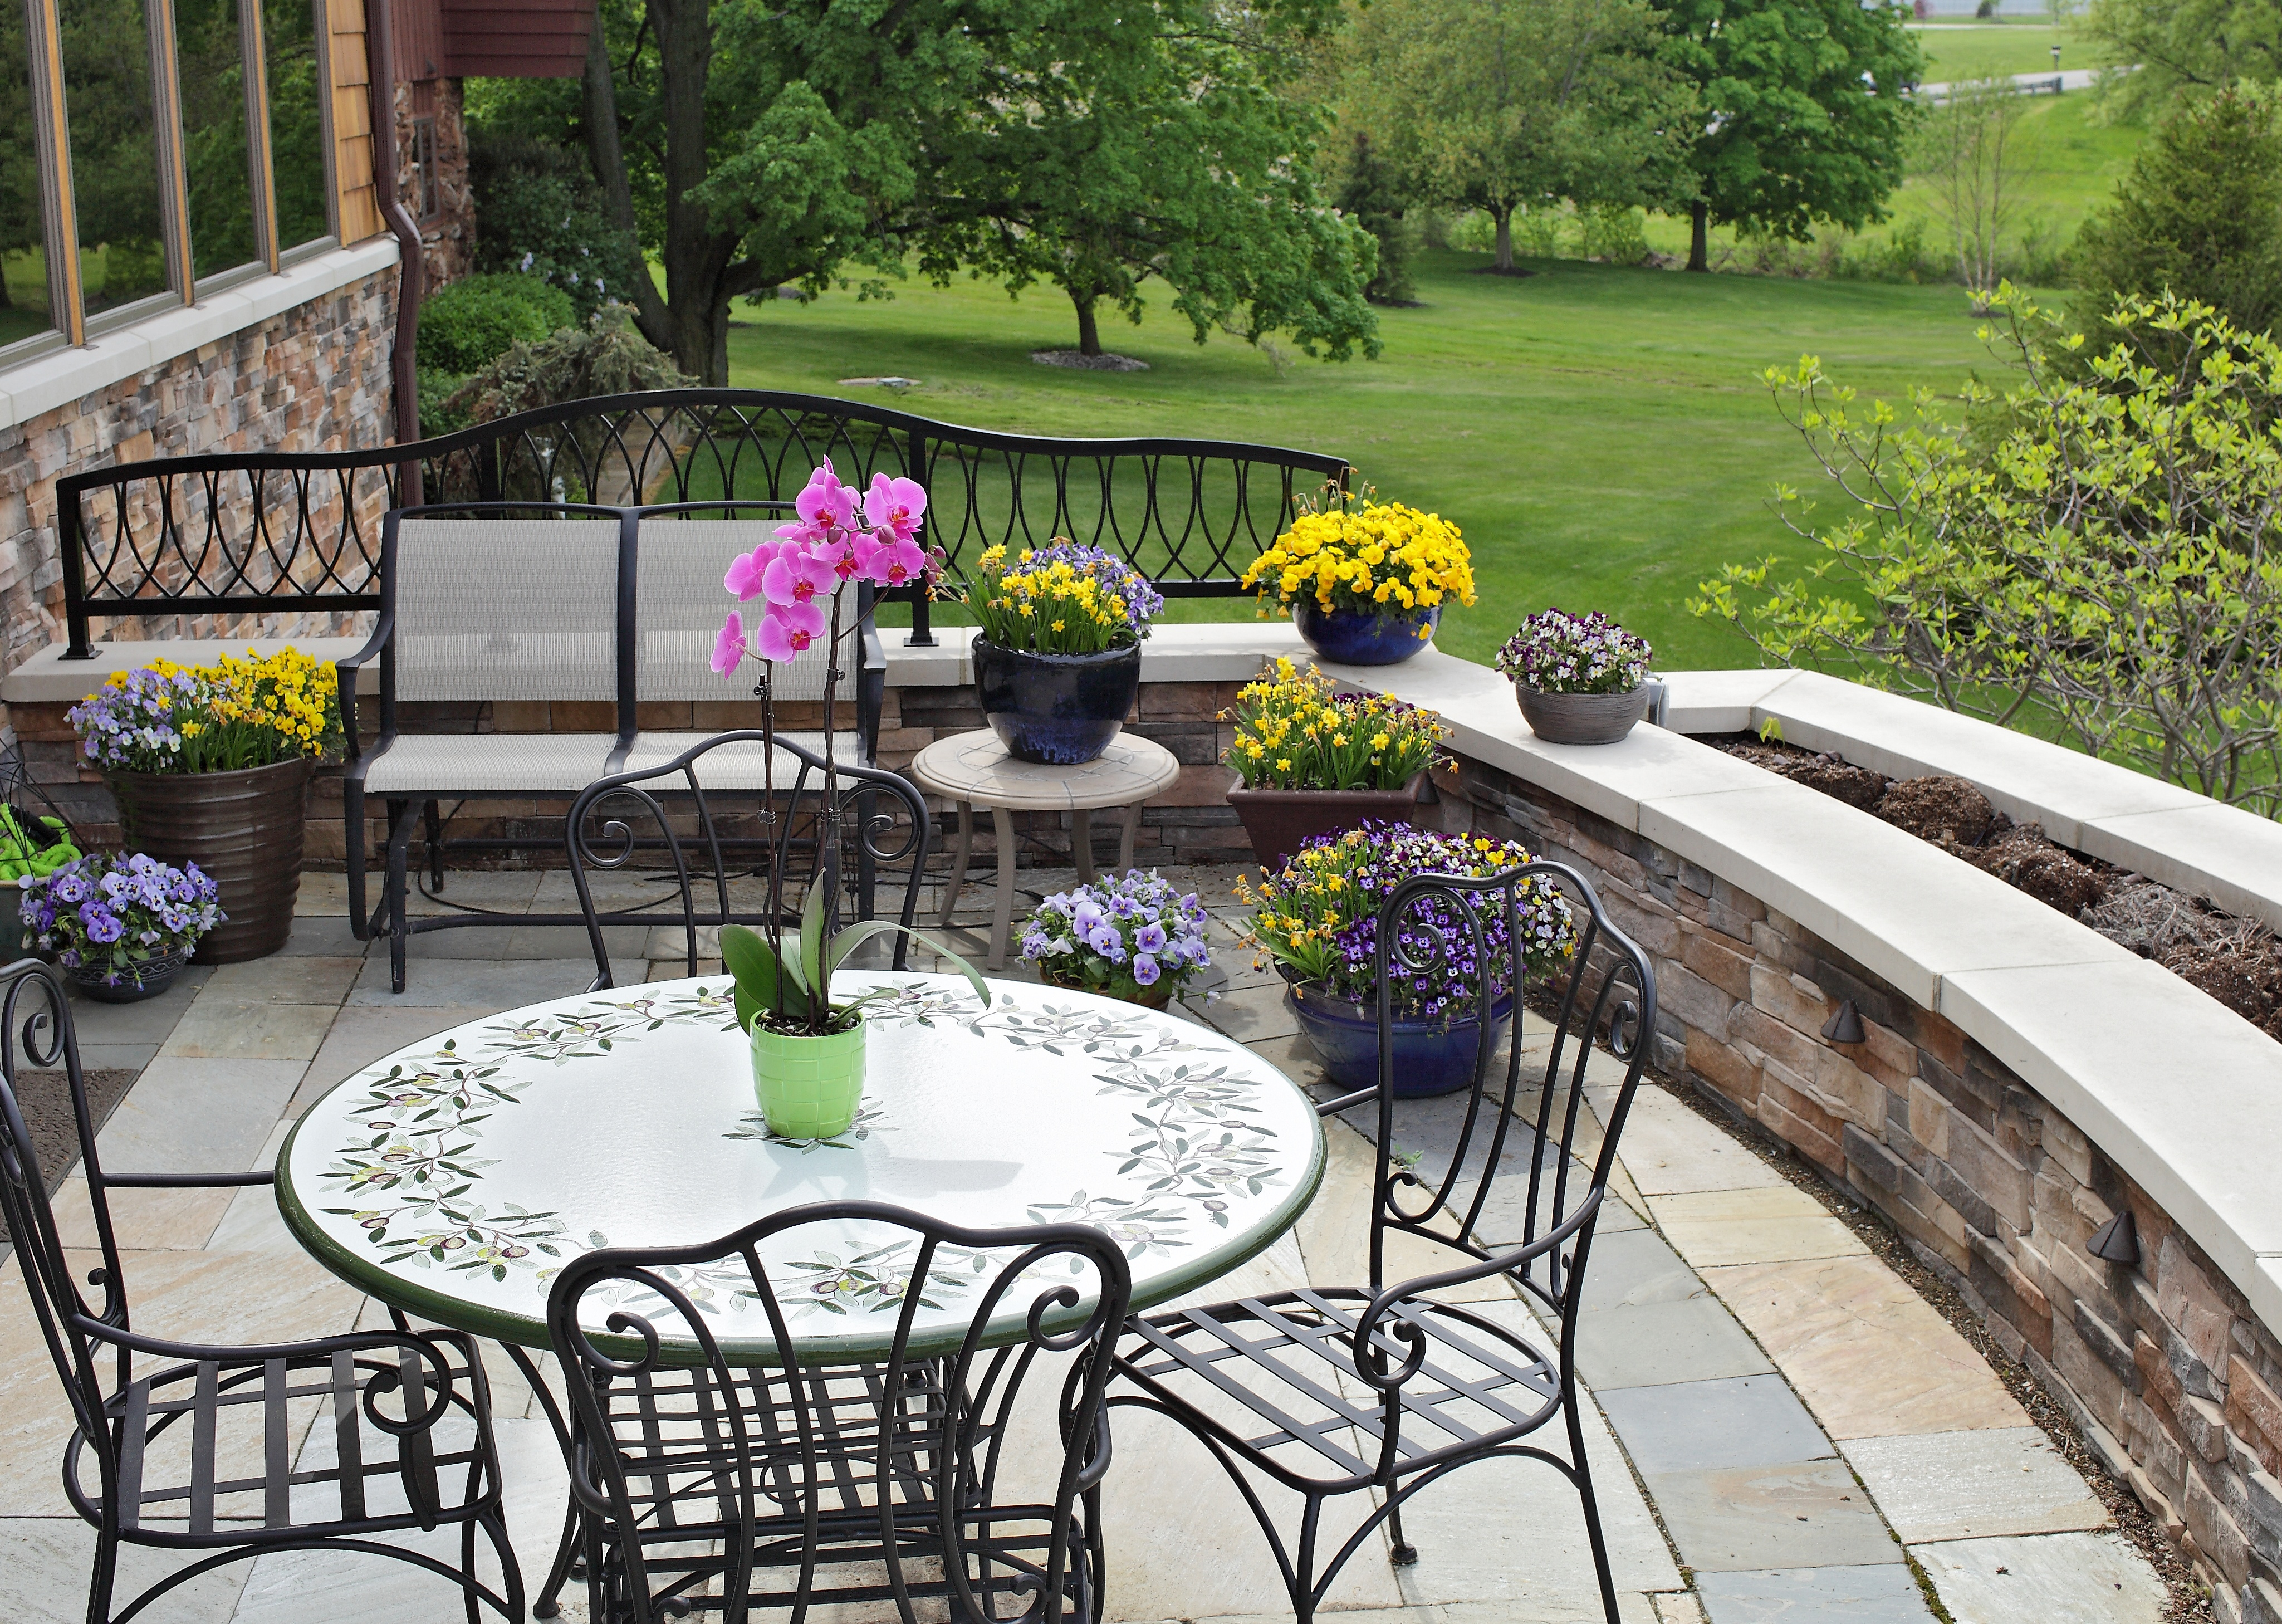 Summer Decorating Ideas Indoor Plants That Add Flair To Your Backyard throughout Decorating A Backyard